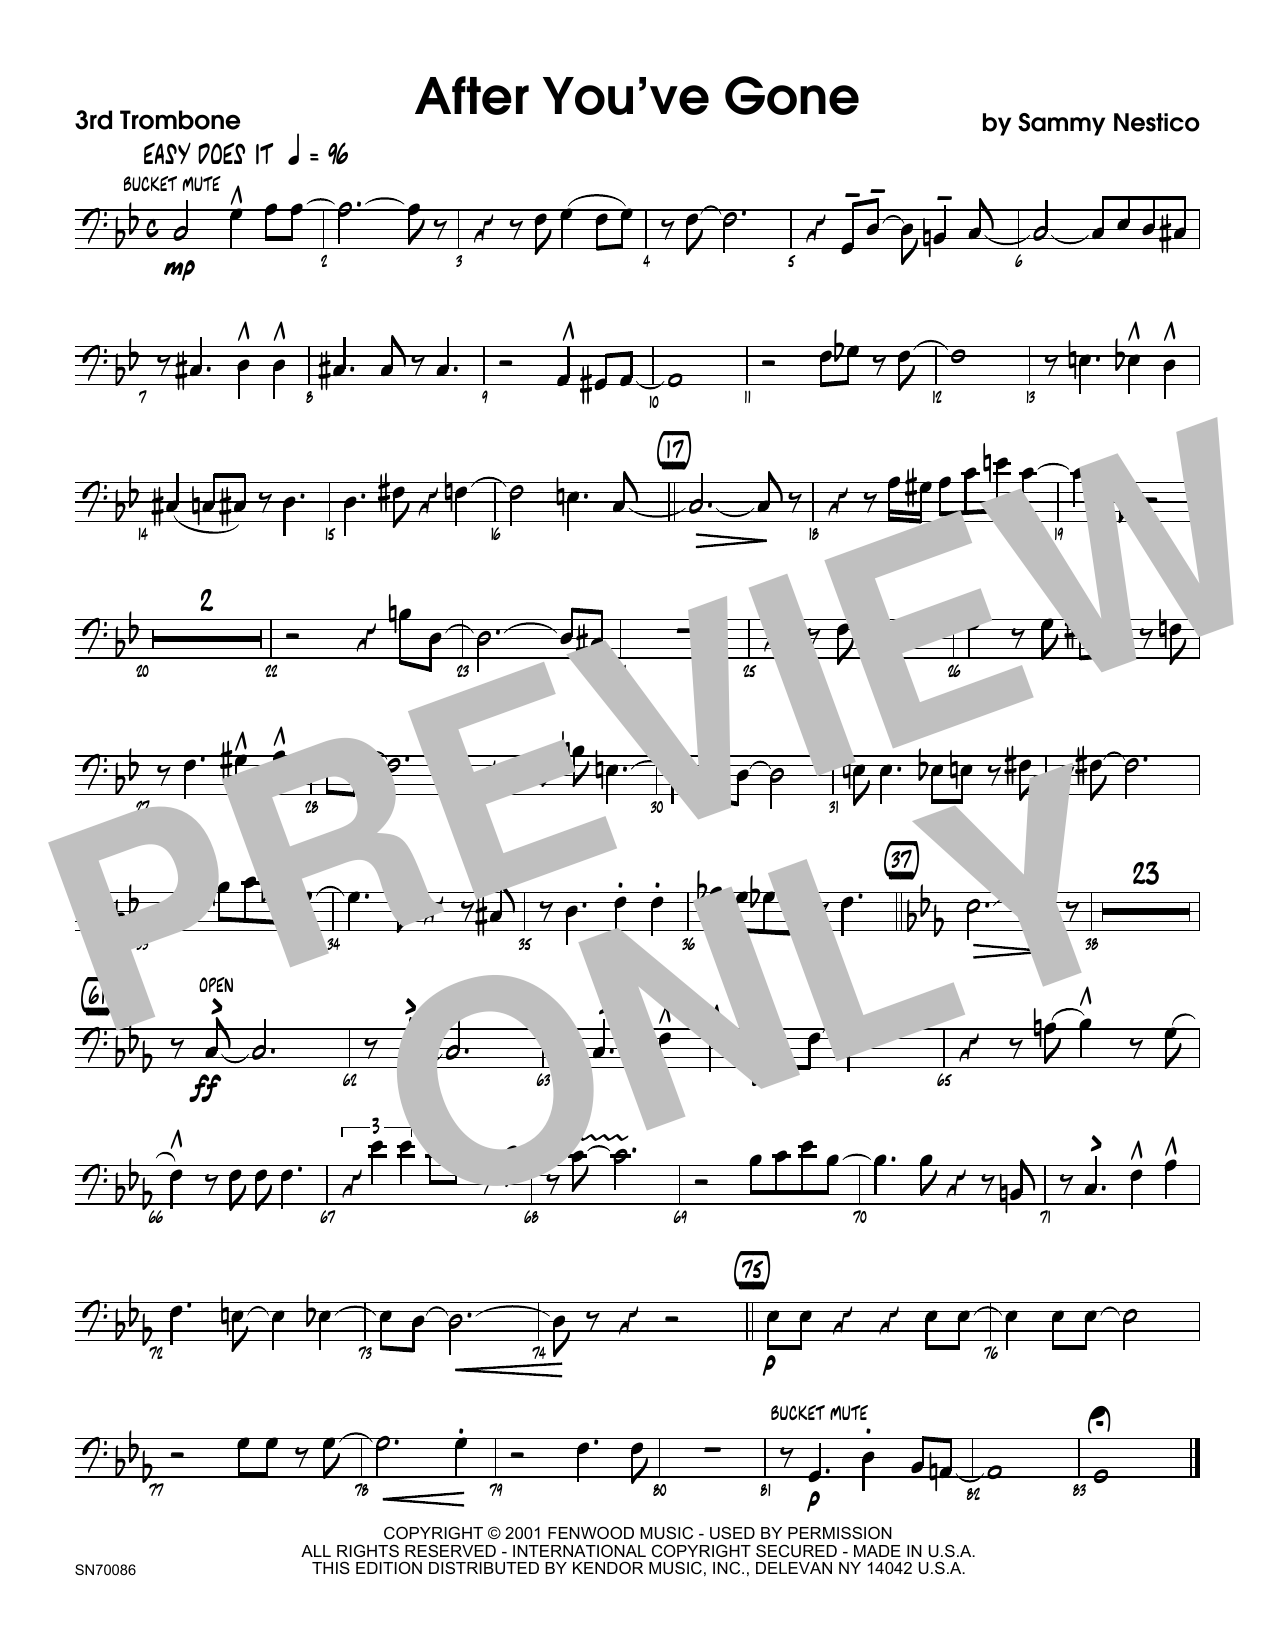 After You've Gone - 3rd Trombone Sheet Music